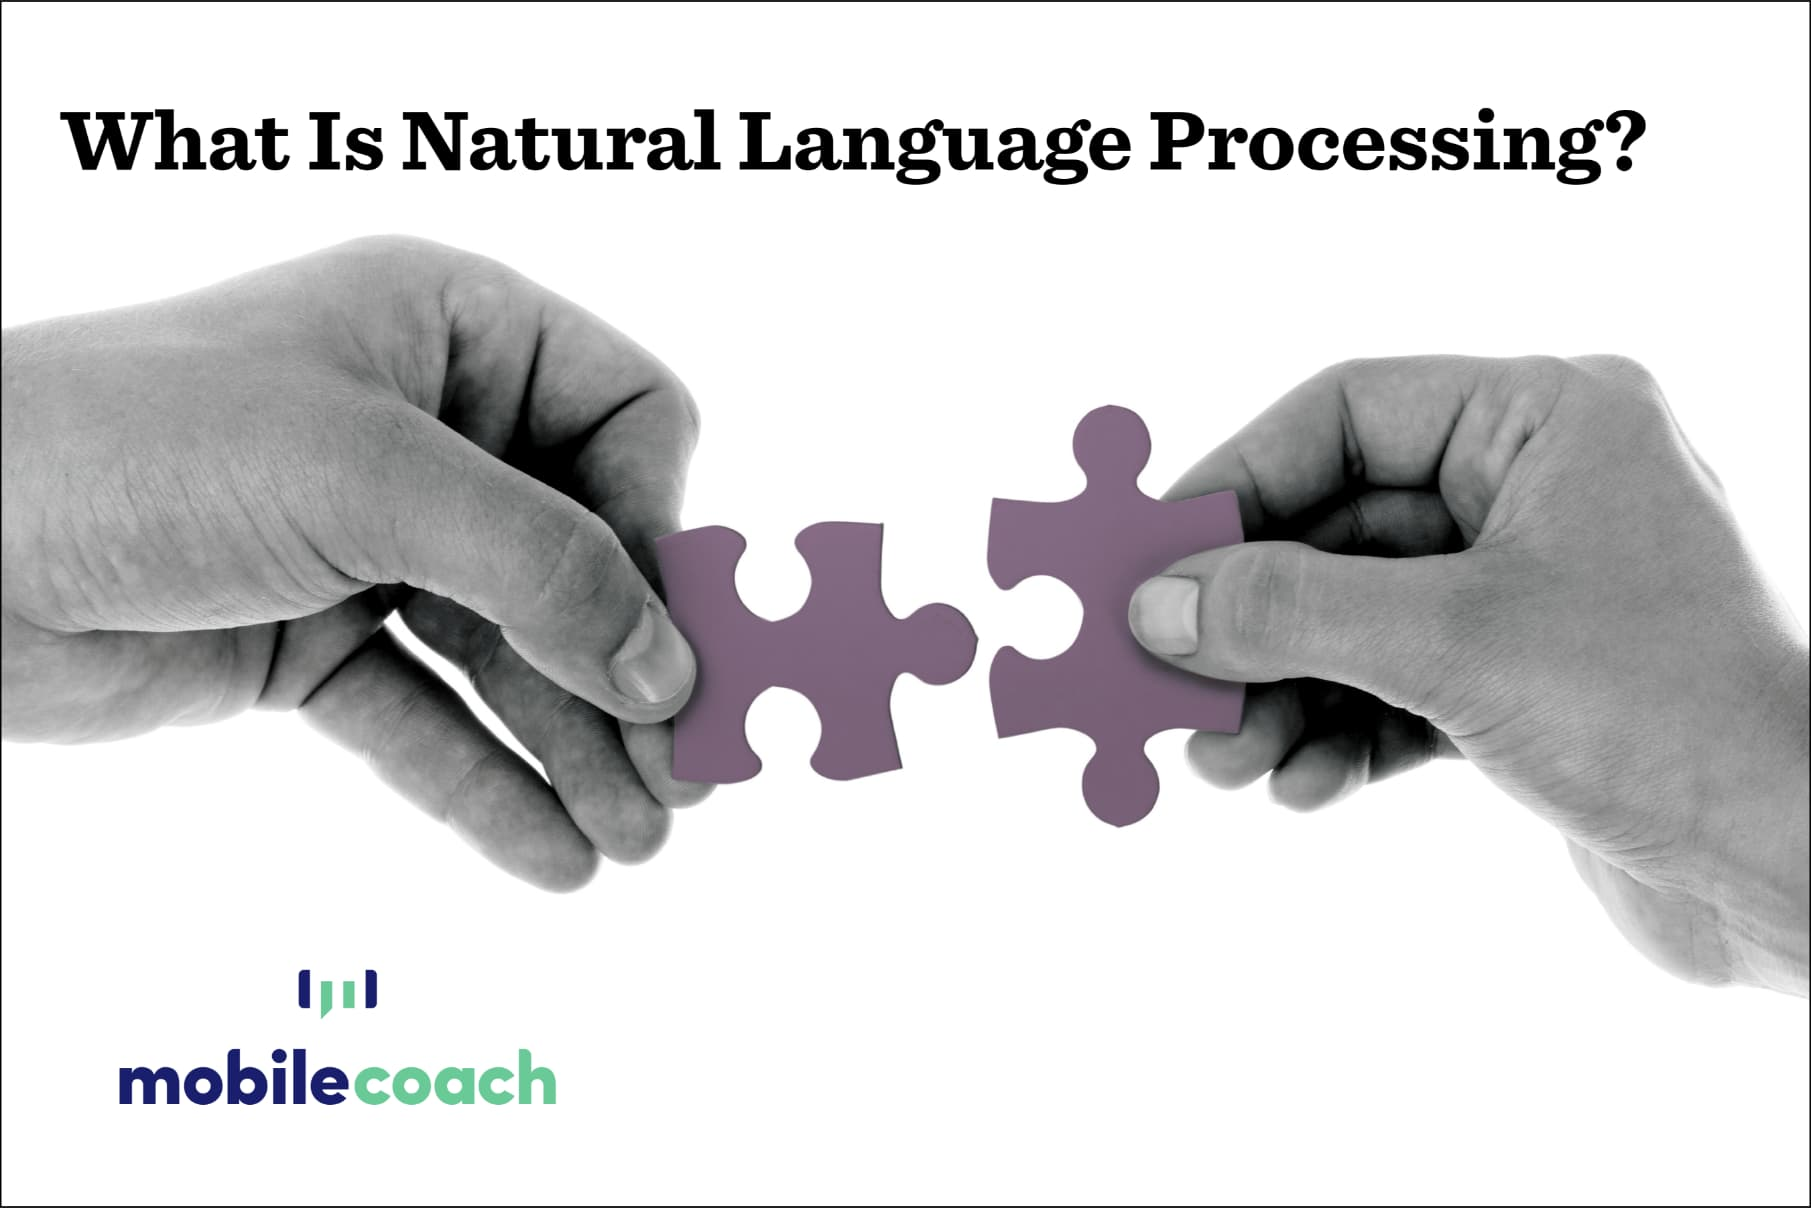 Chatterbots 6 – What is Natural Language Processing?